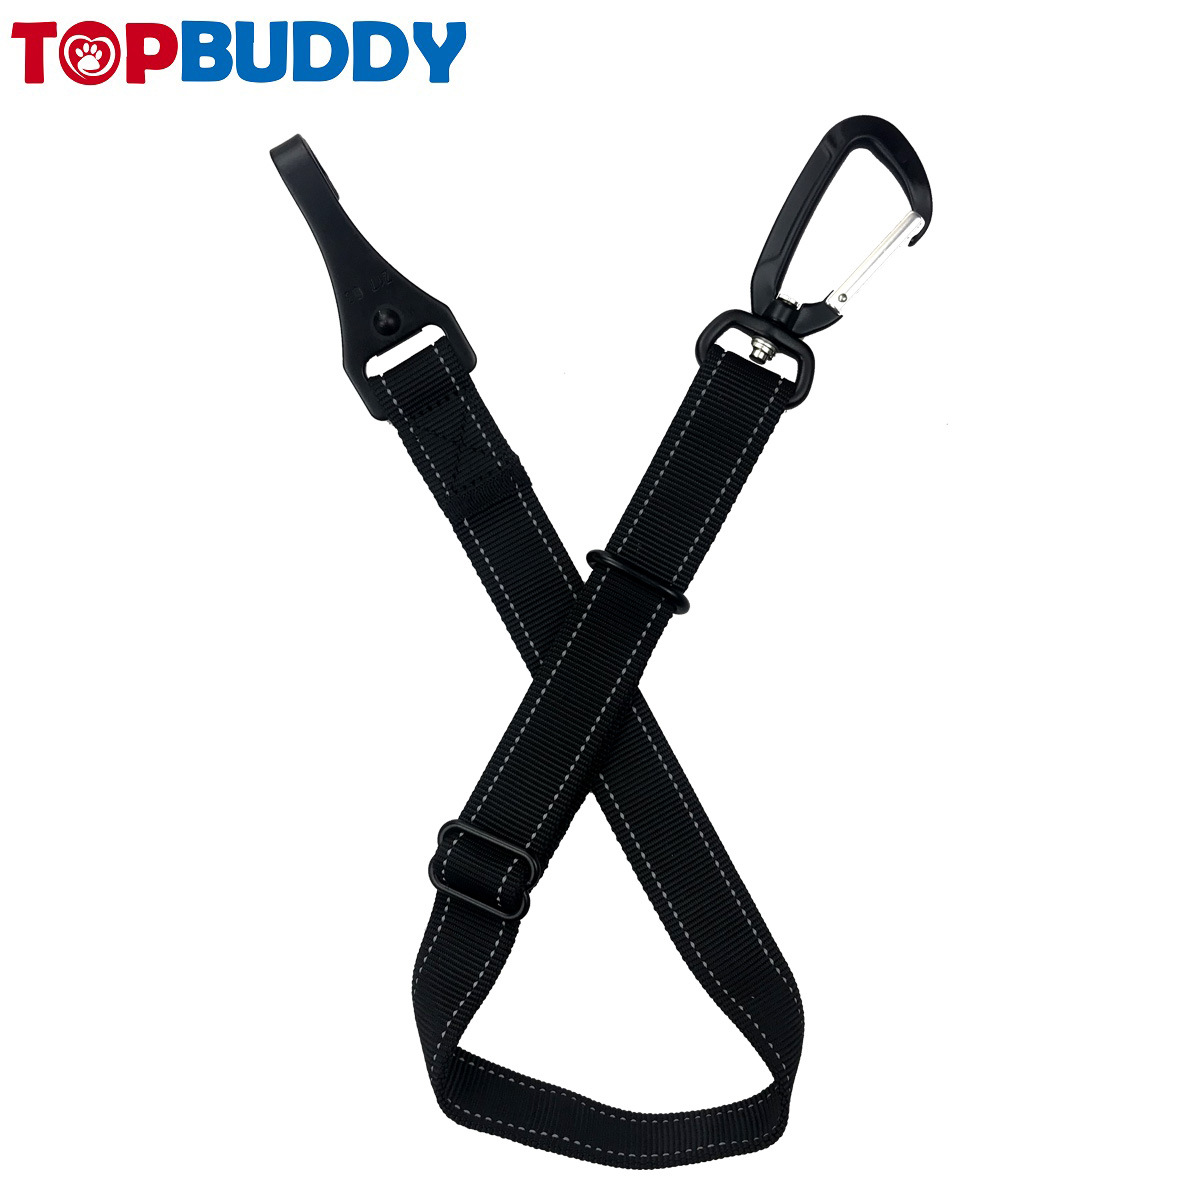 Hot Selling Pet Car Mounted Nylon Traction Belt Aviation Aluminum Material Dog Buckle Strong Safety Belt